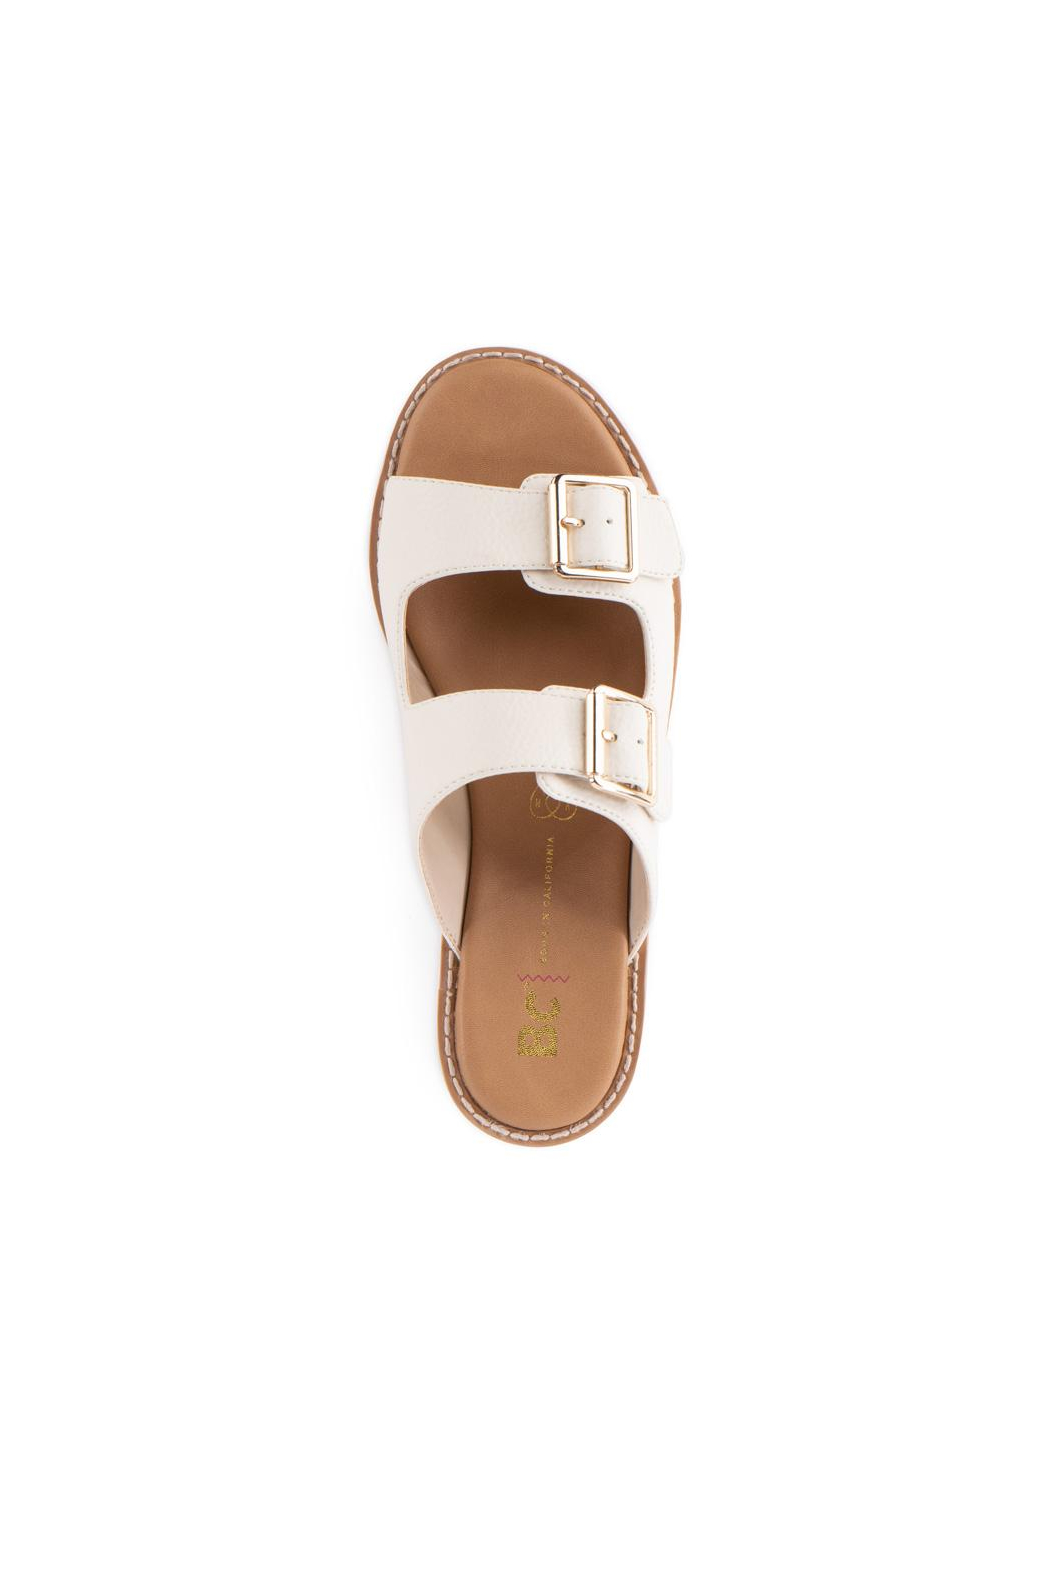 BC Footwear Hand To Hold Sandal - Back Cropped Image